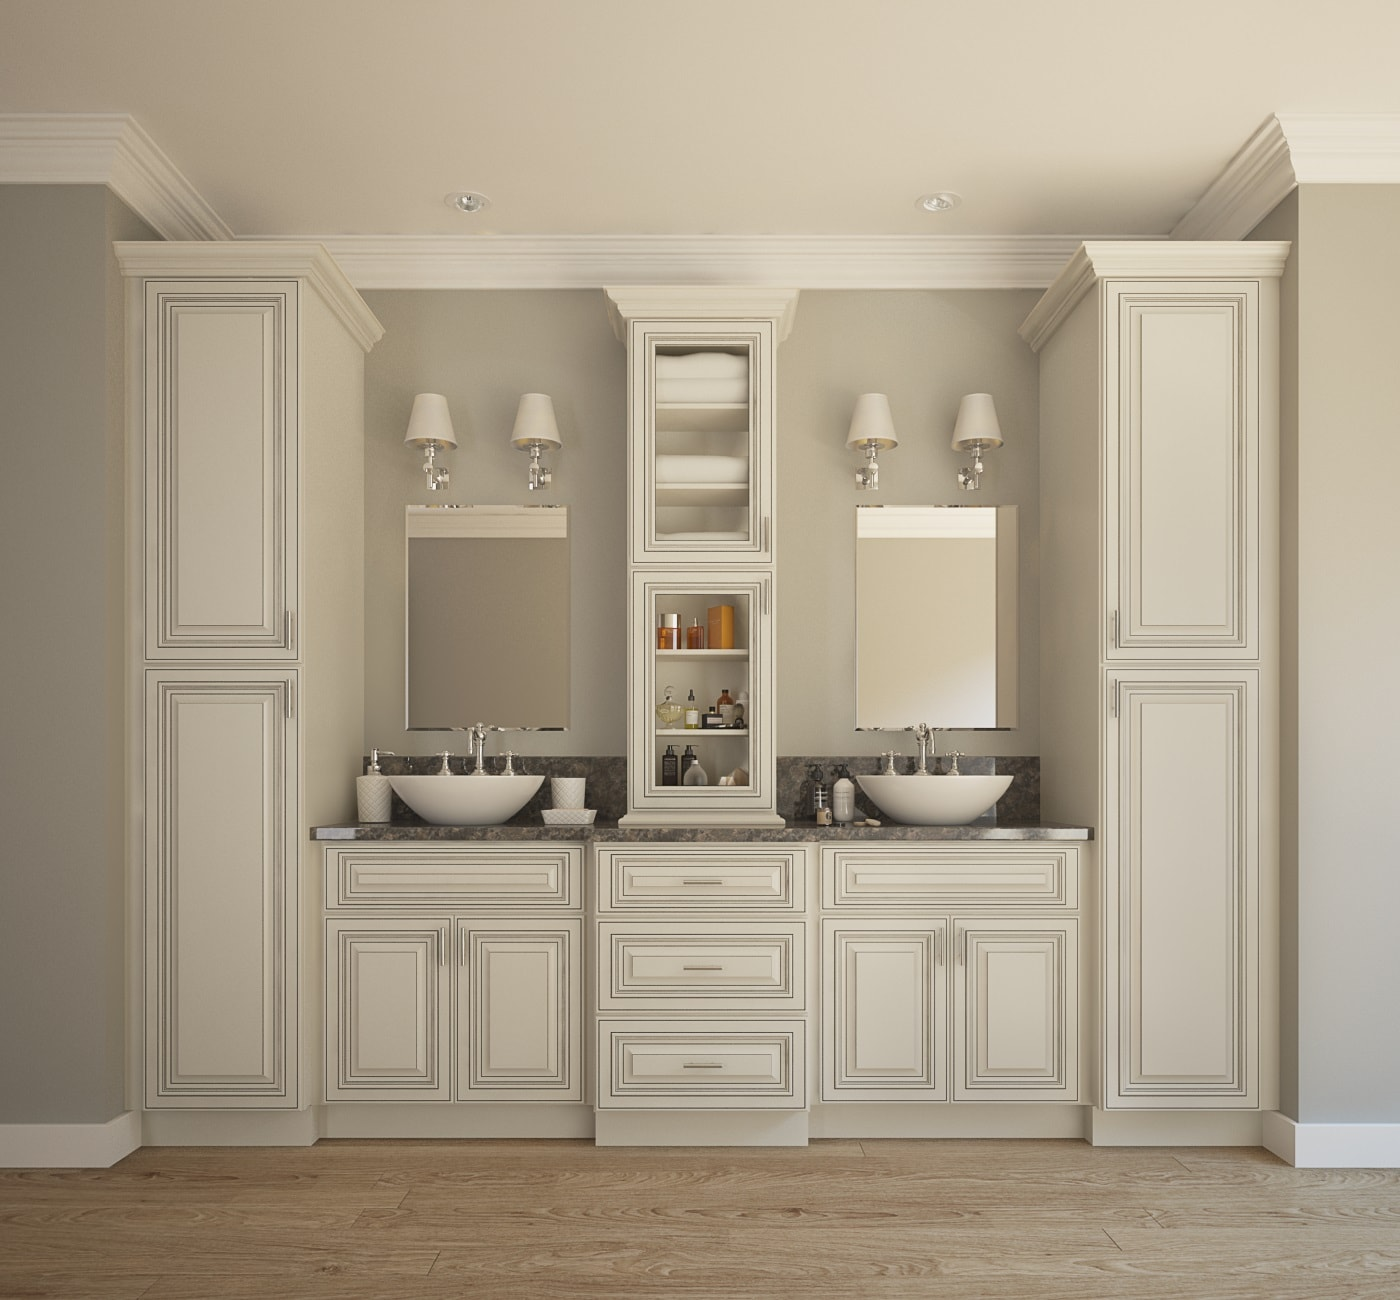 bathroom cabinets signature vanilla rta kitchen cabinets KQSQAIT